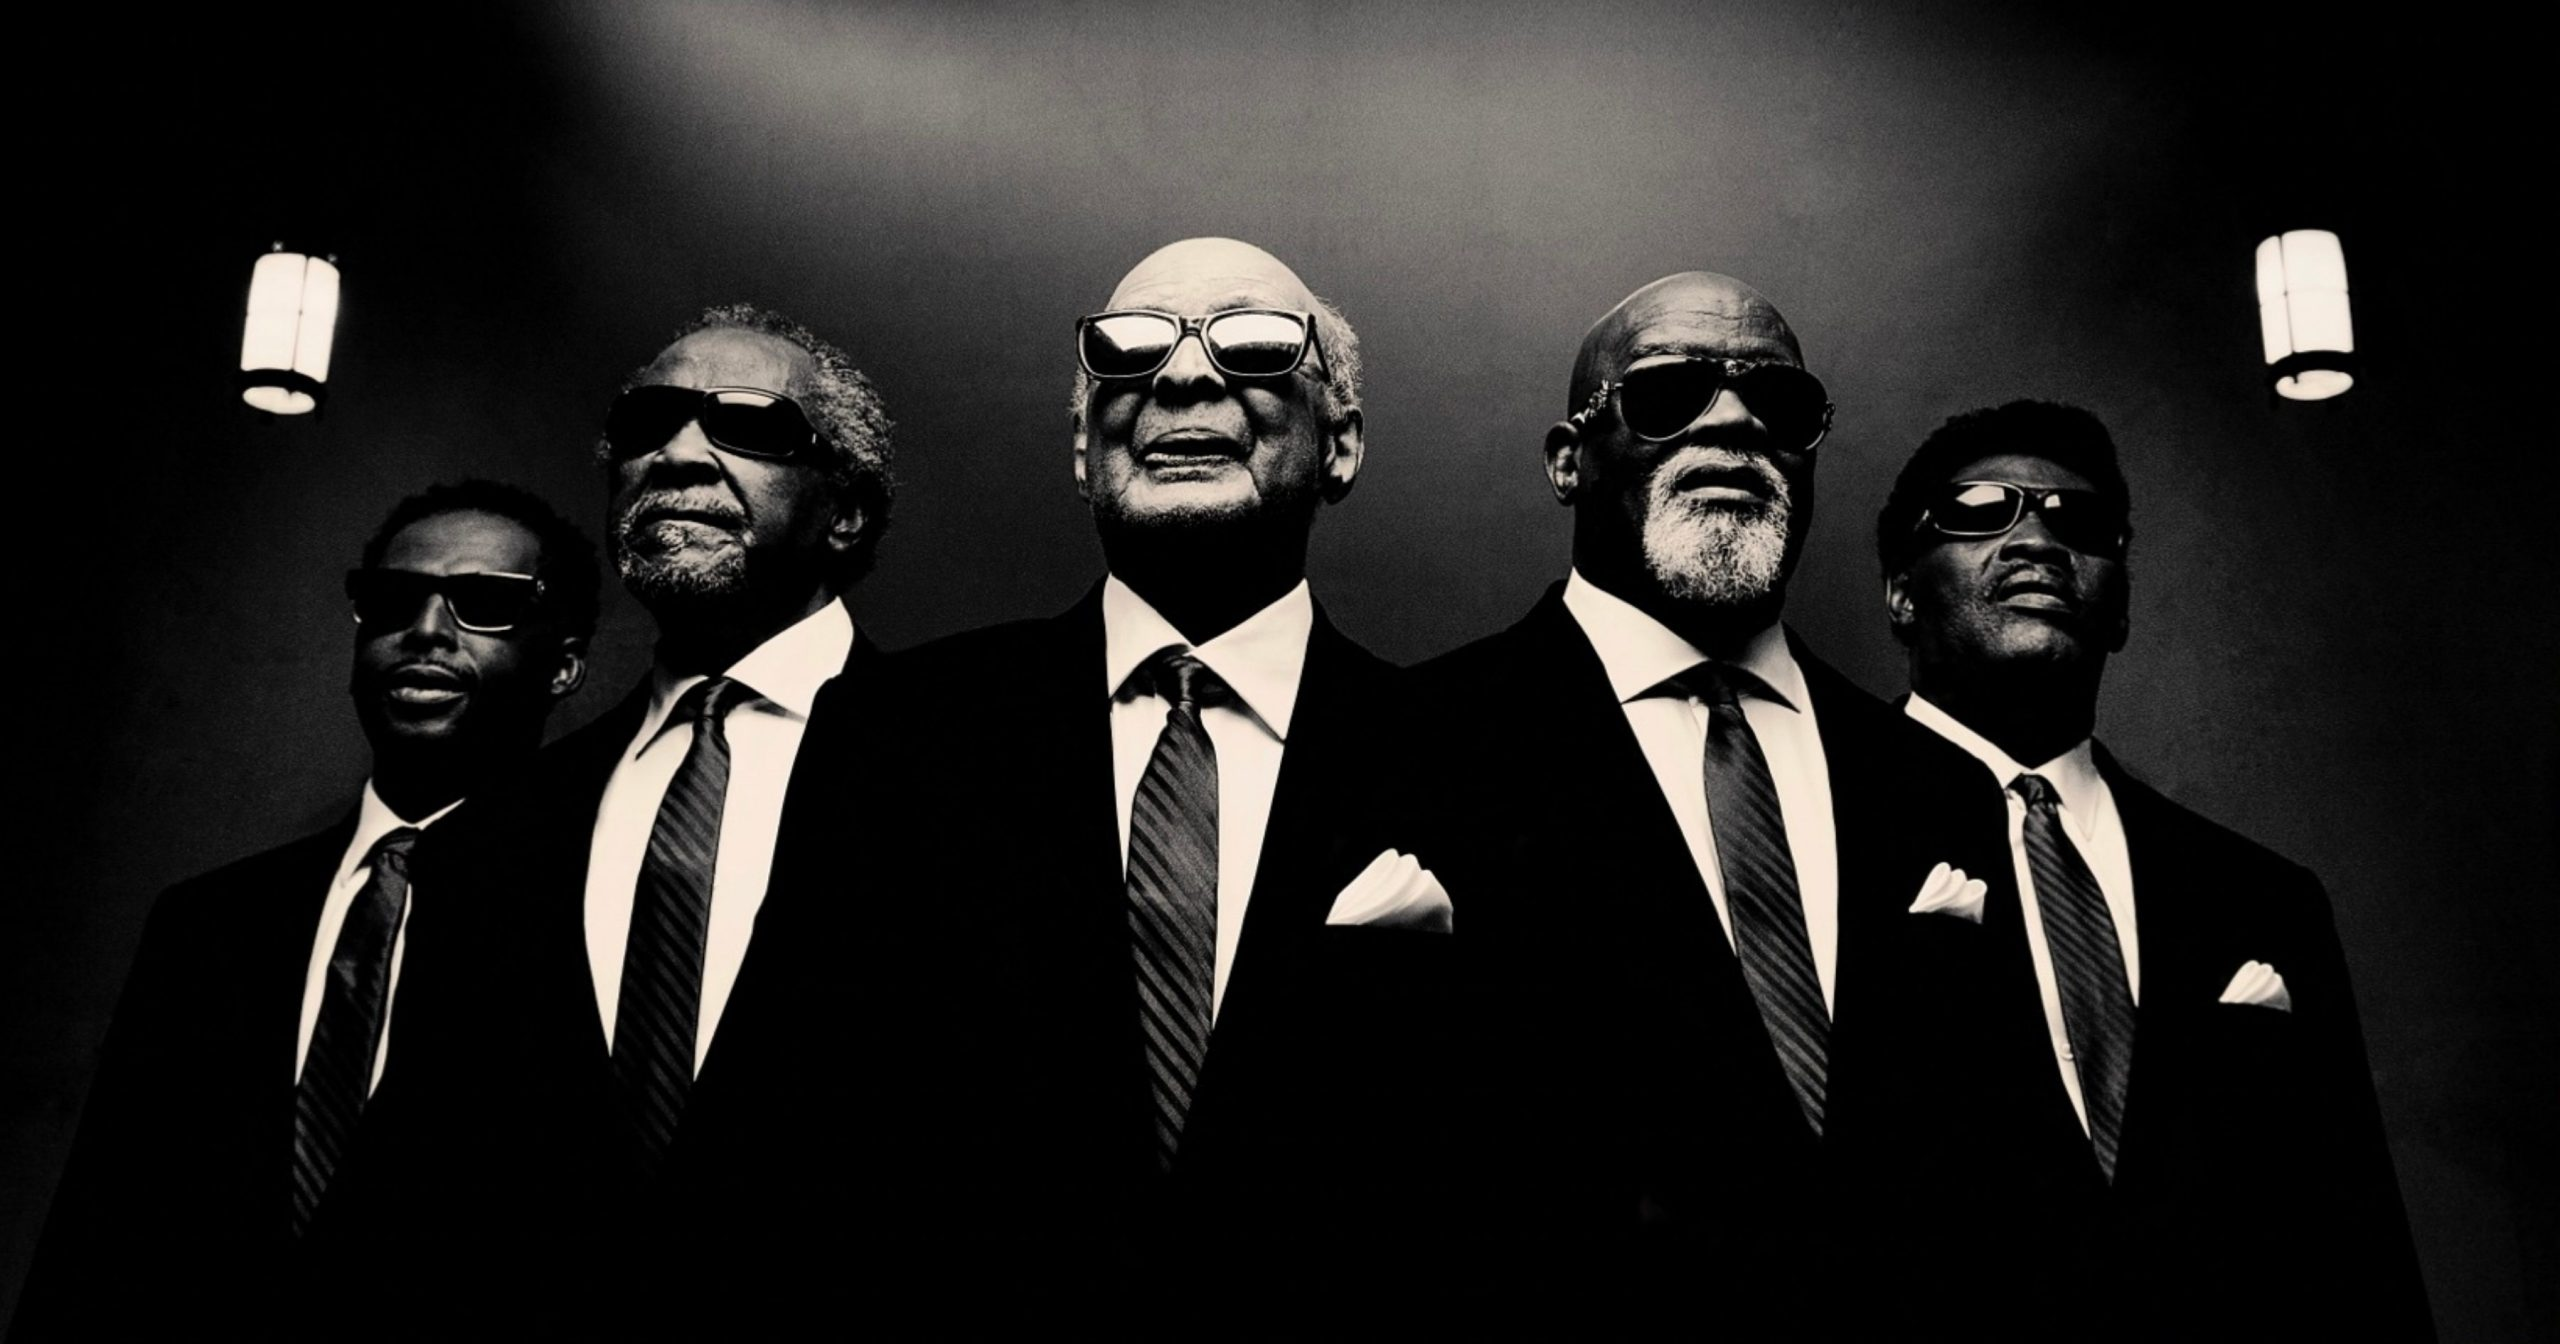 The Show On The Road – Blind Boys of Alabama